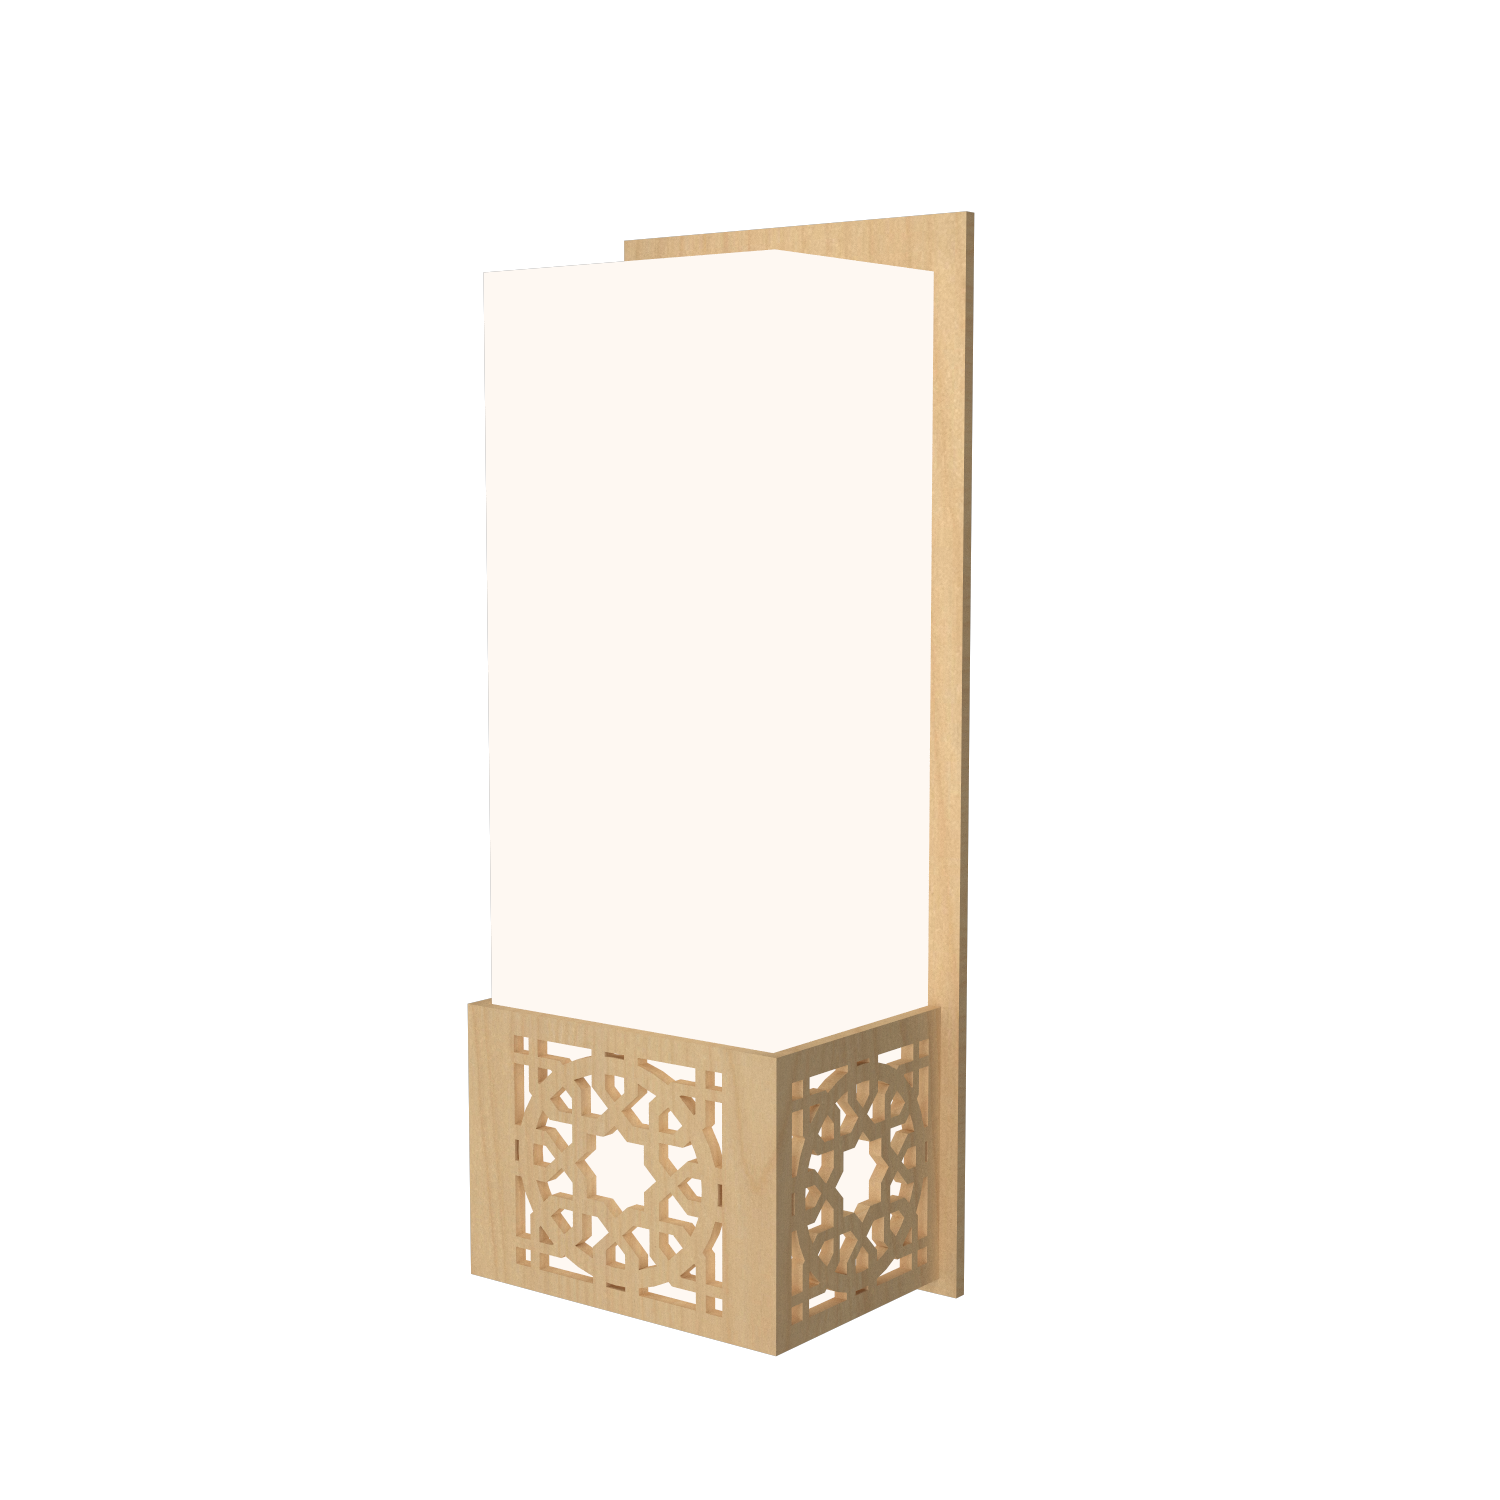 Wall Lamp Accord Patterns 4052 - Patterns Line Accord Lighting | 34. Maple